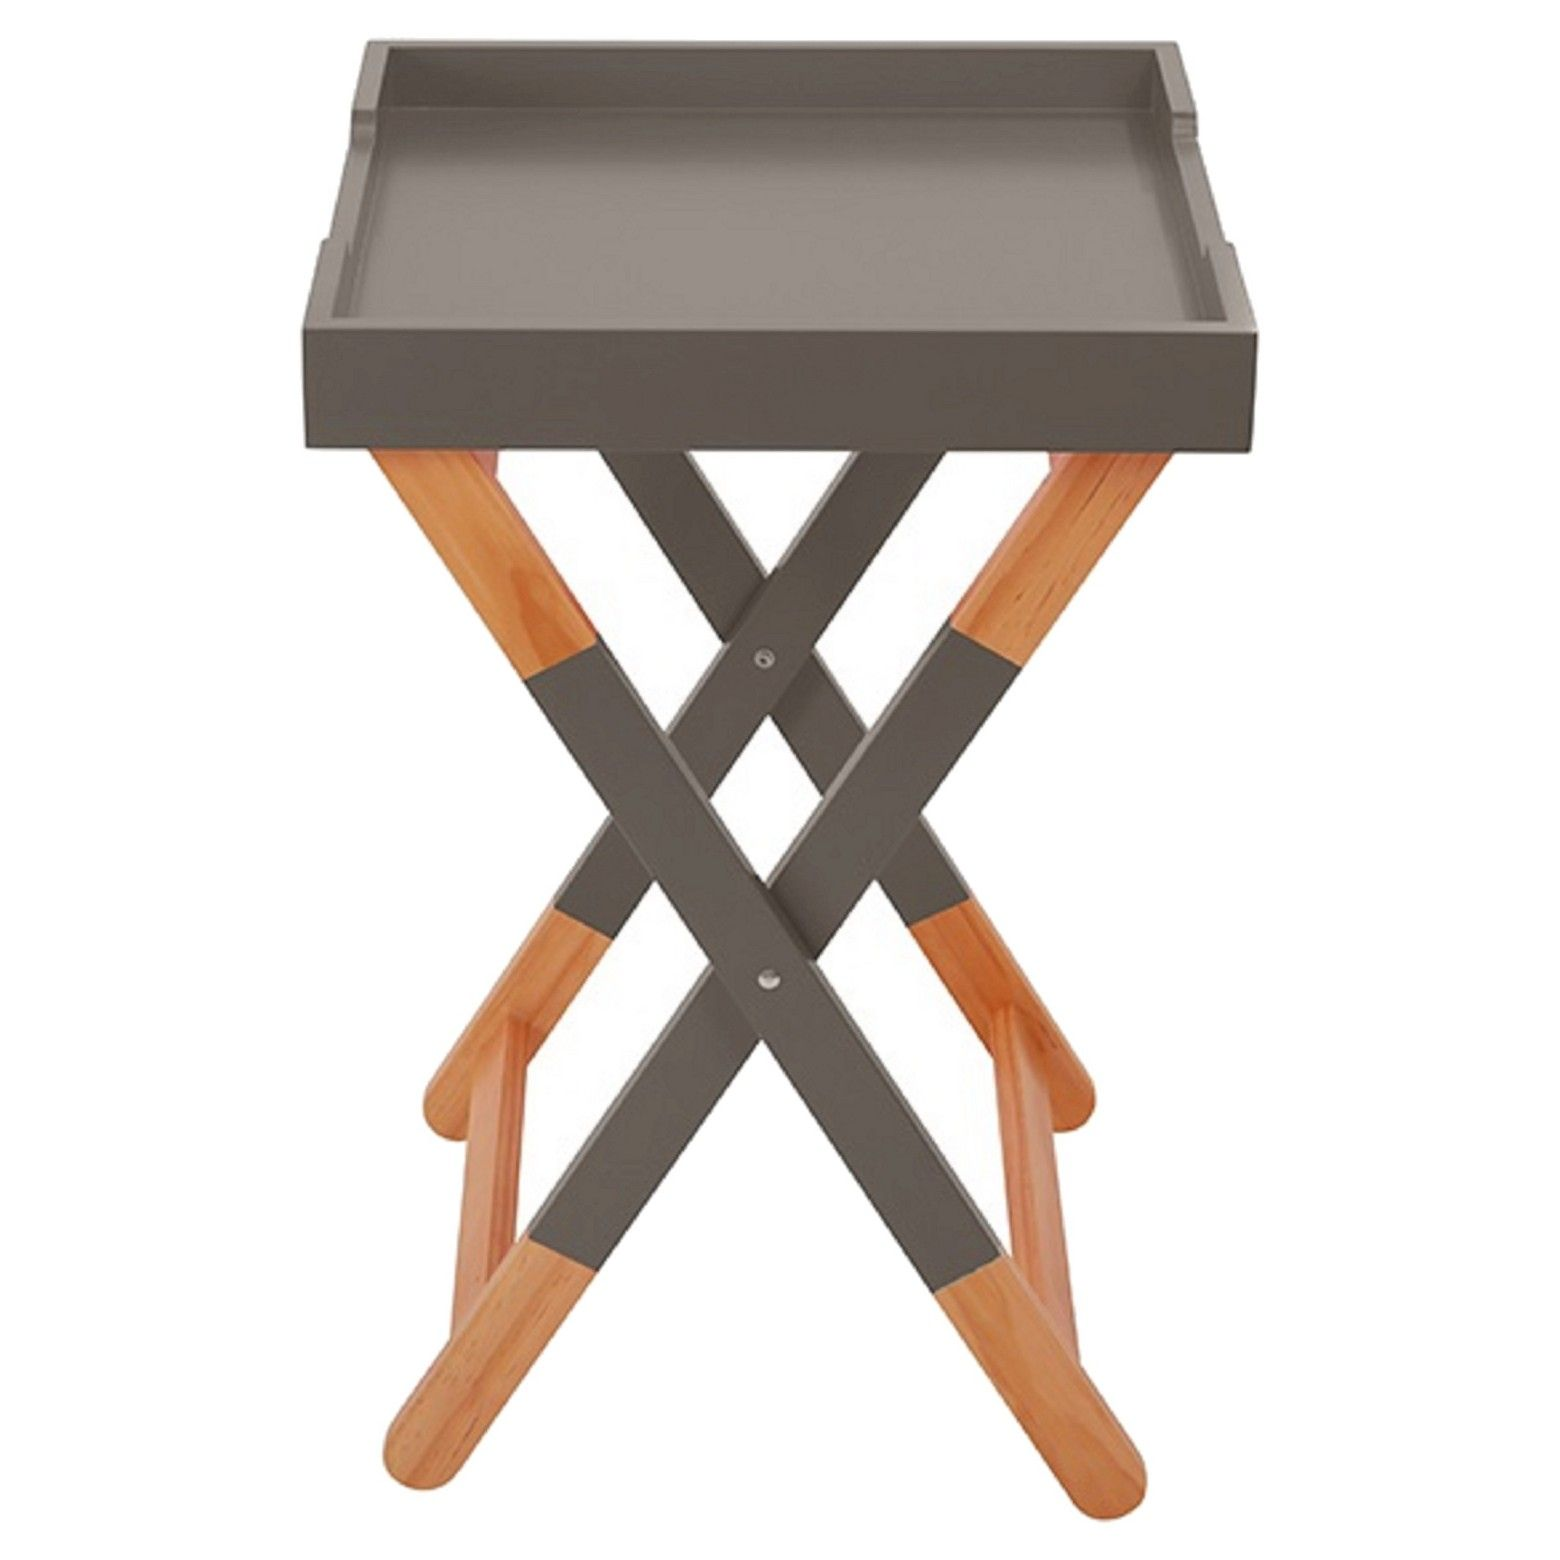 urb space wood tray side table trays and triller accent target bull painted natural woodbrbull versatilebrbrthe dar has trendy two tone look can used pink patio umbrella large